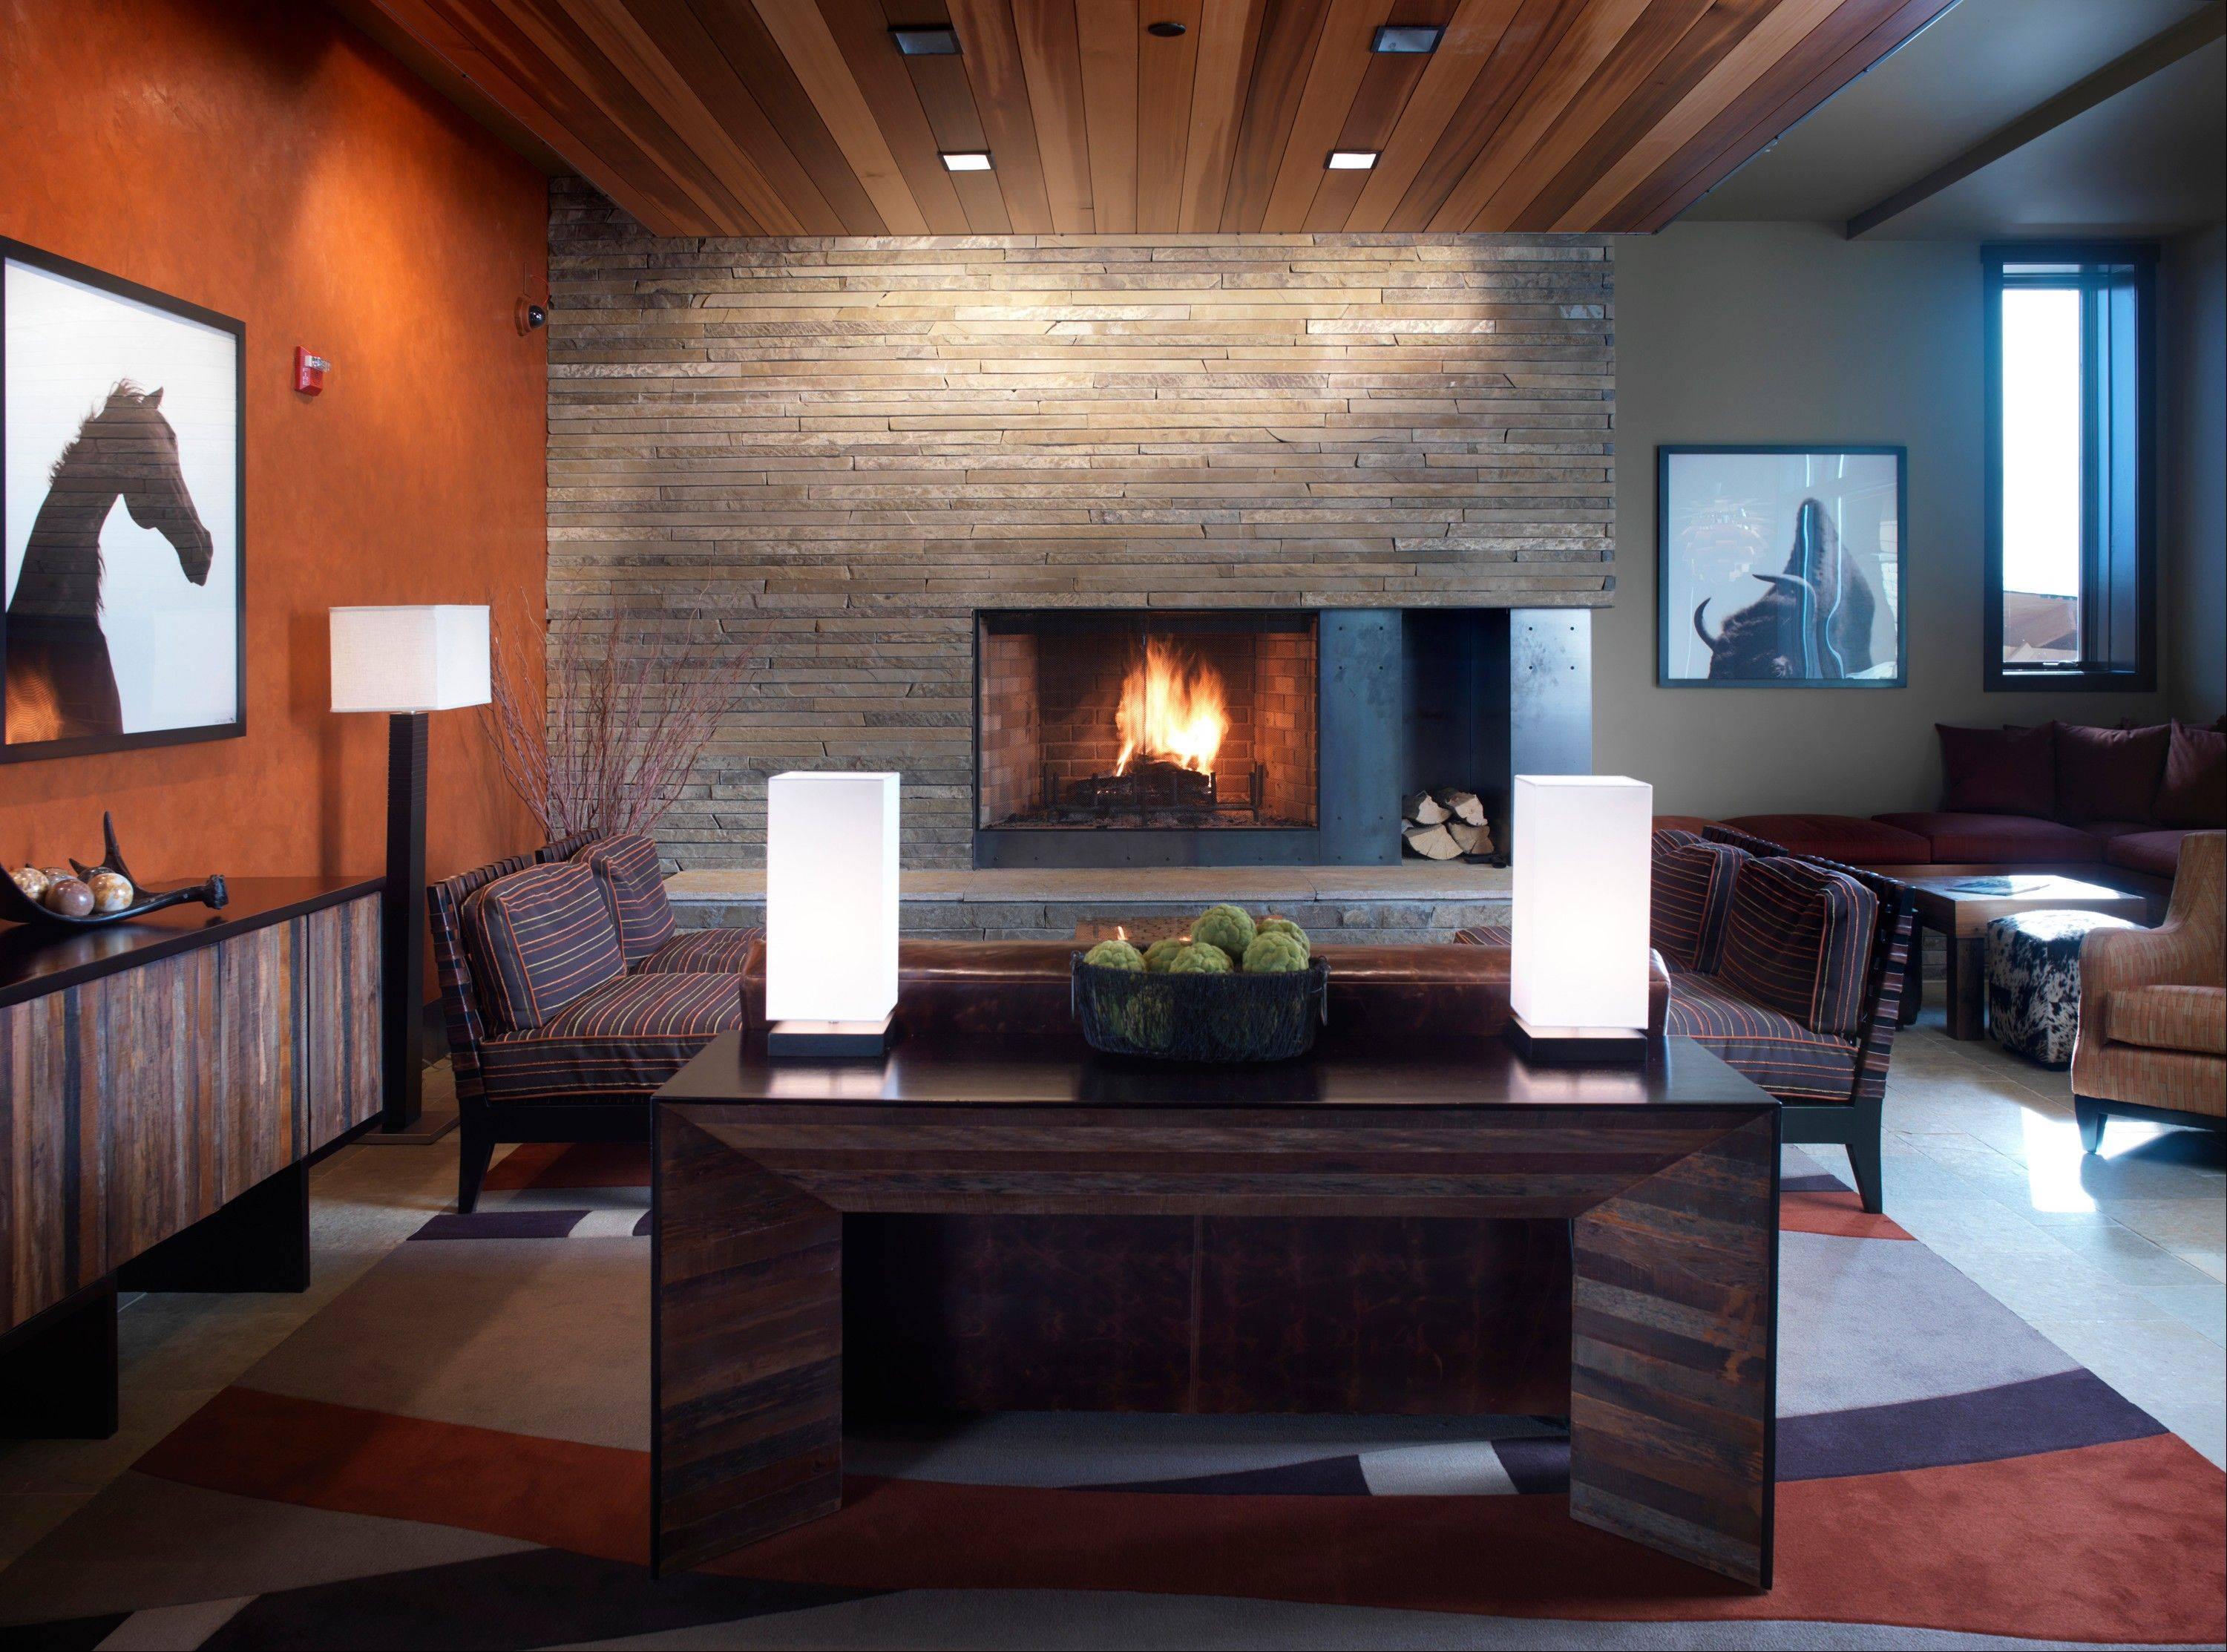 The lobby of Hotel Terra in Jackson Hole, Wyo., shows a contemporary look in contrast to the rustic chalet-style designs traditional in ski lodges.